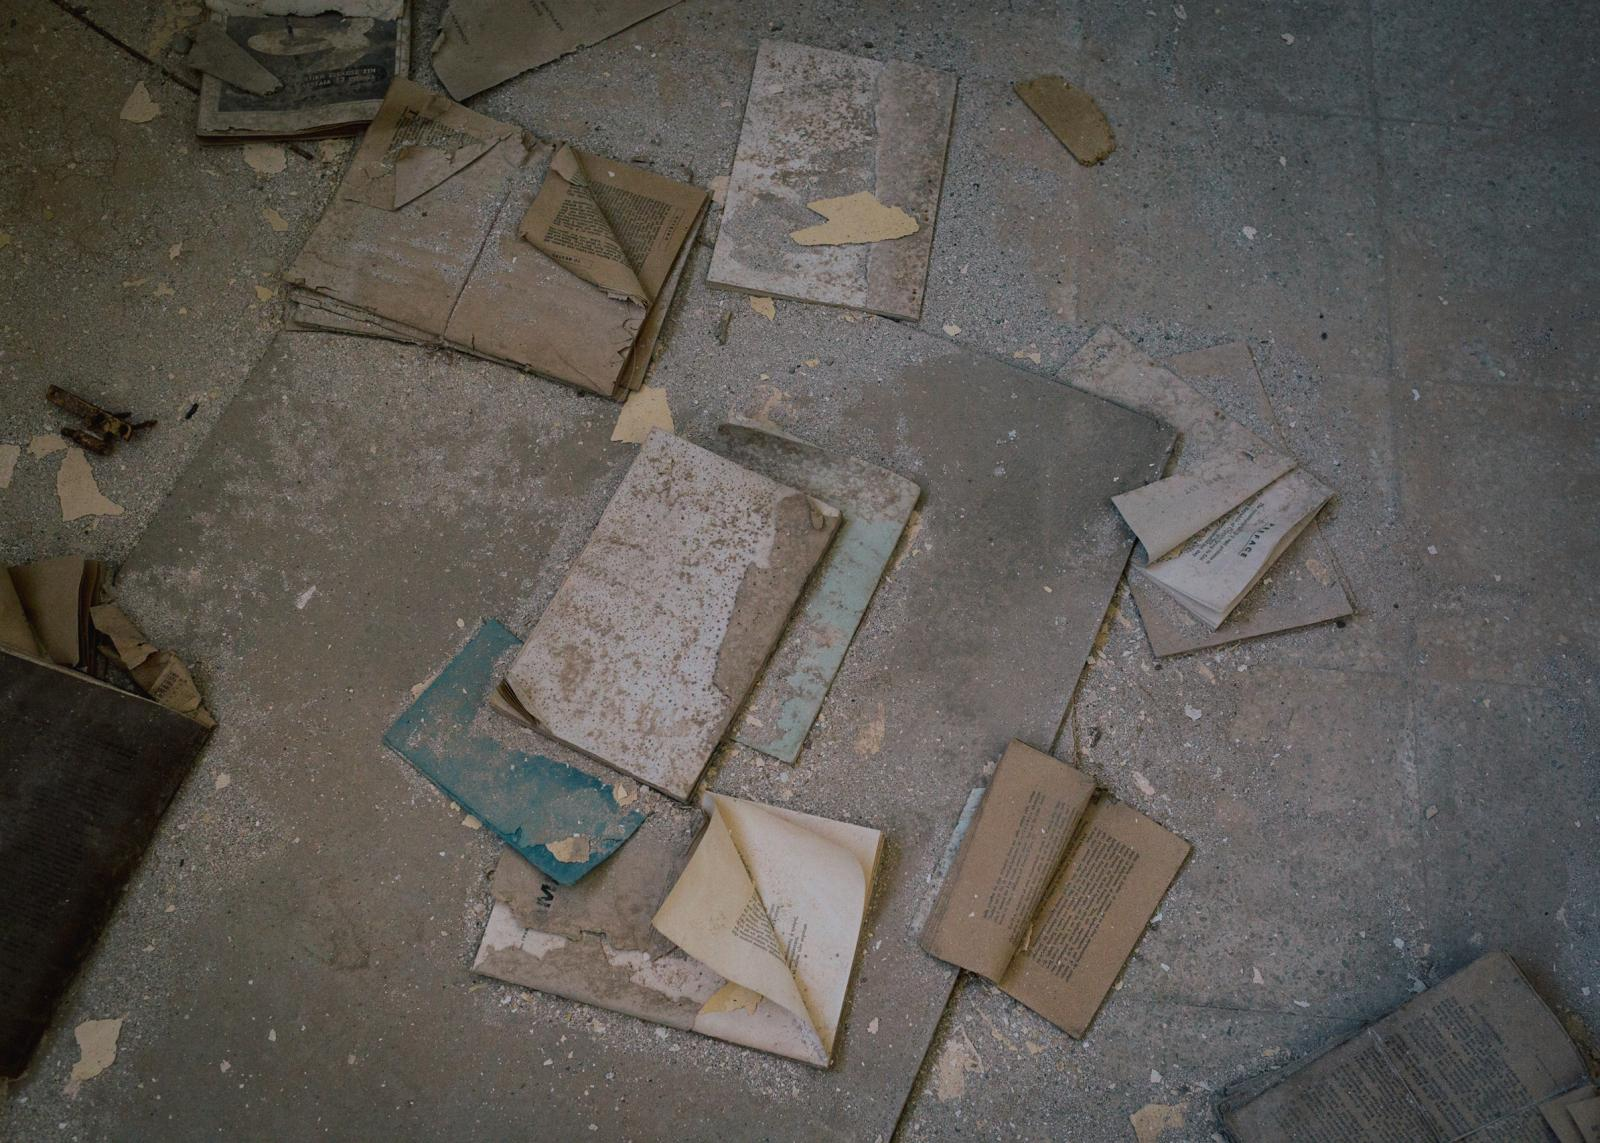 Books lie scattered on the floor in the former library in the ghost town.